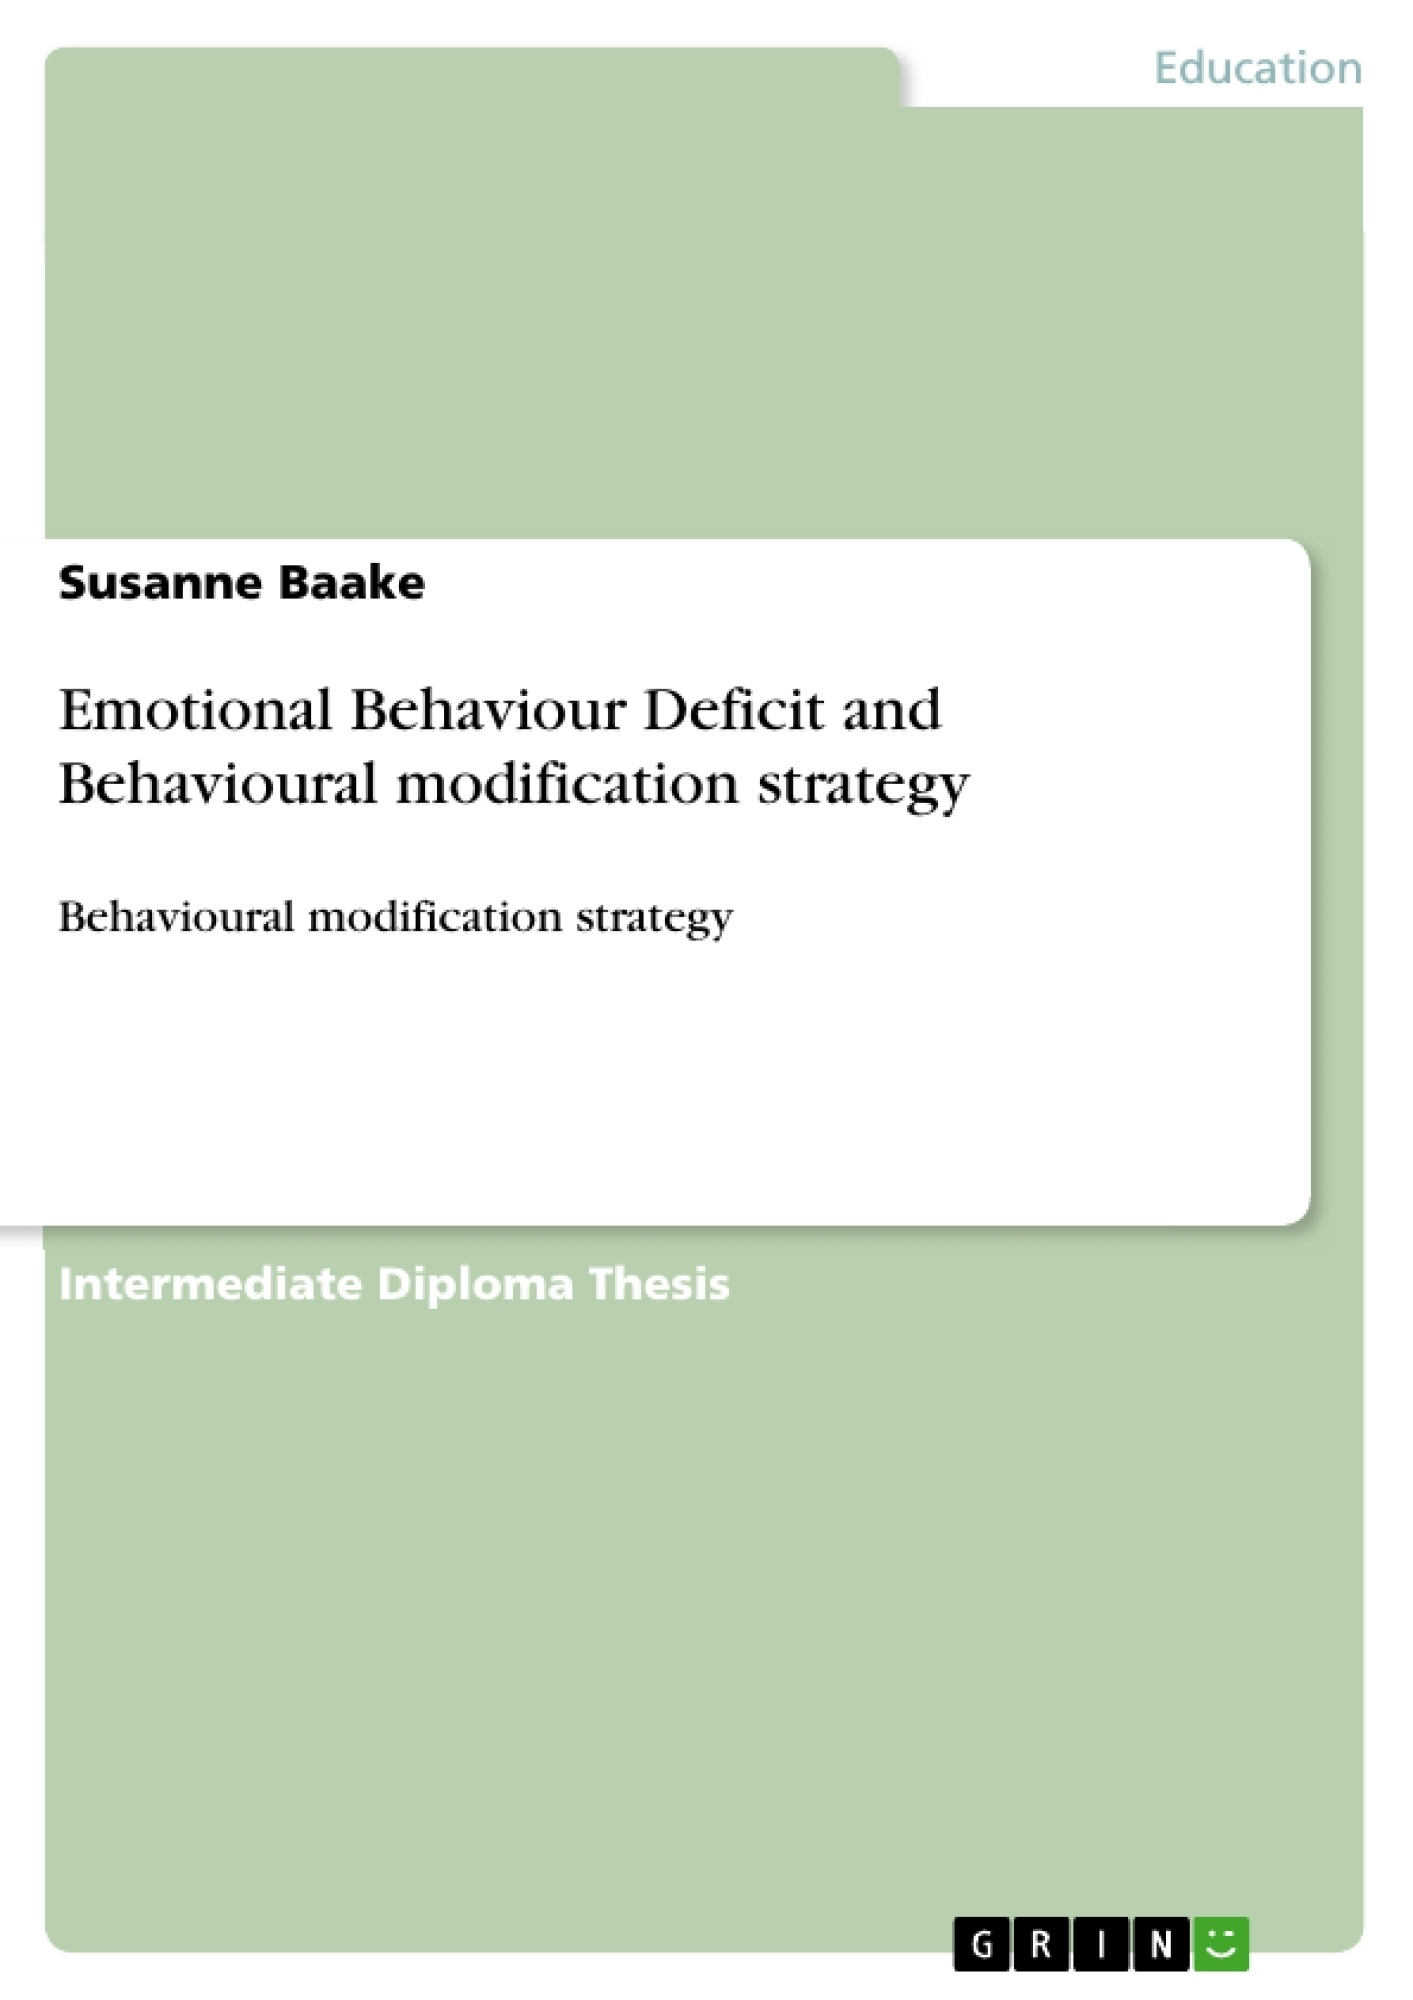 Title: Emotional Behaviour Deficit and Behavioural modification strategy